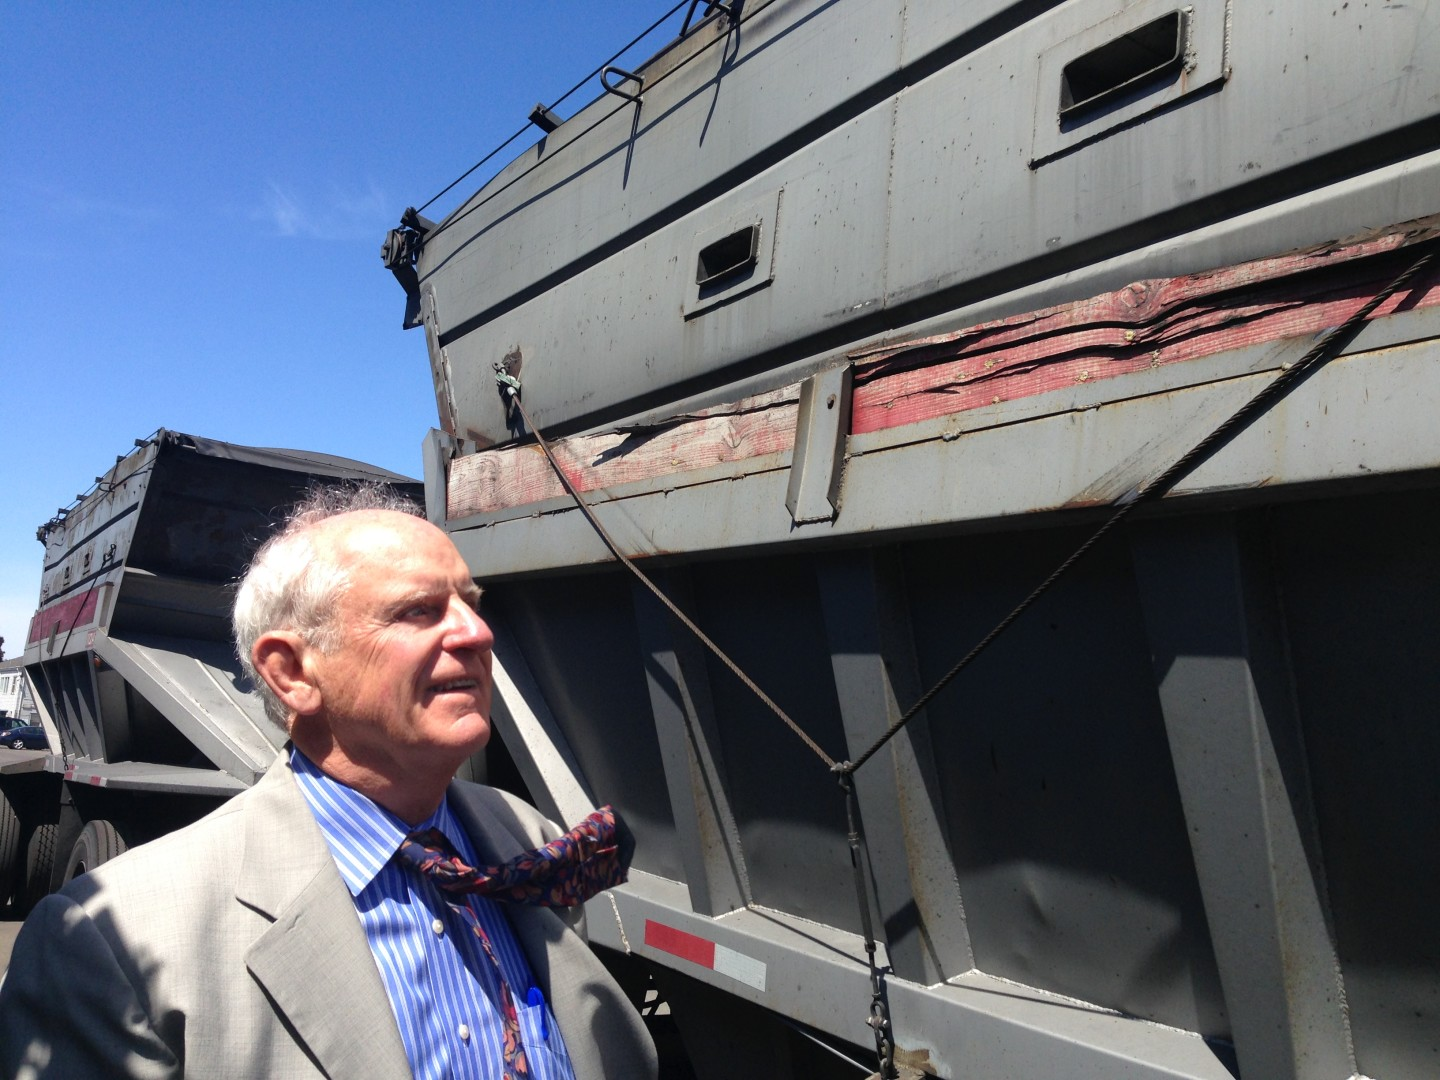 Richmond Mayor Tom Butt says he'd like to know how much coal dust blows from open piles at the Levin-Richmond Terminal. Coal particles can break down into smaller particulate matter that's harmful to lungs, as they get kicked up over and over by cars and shoes. (Julie Small/KQED)